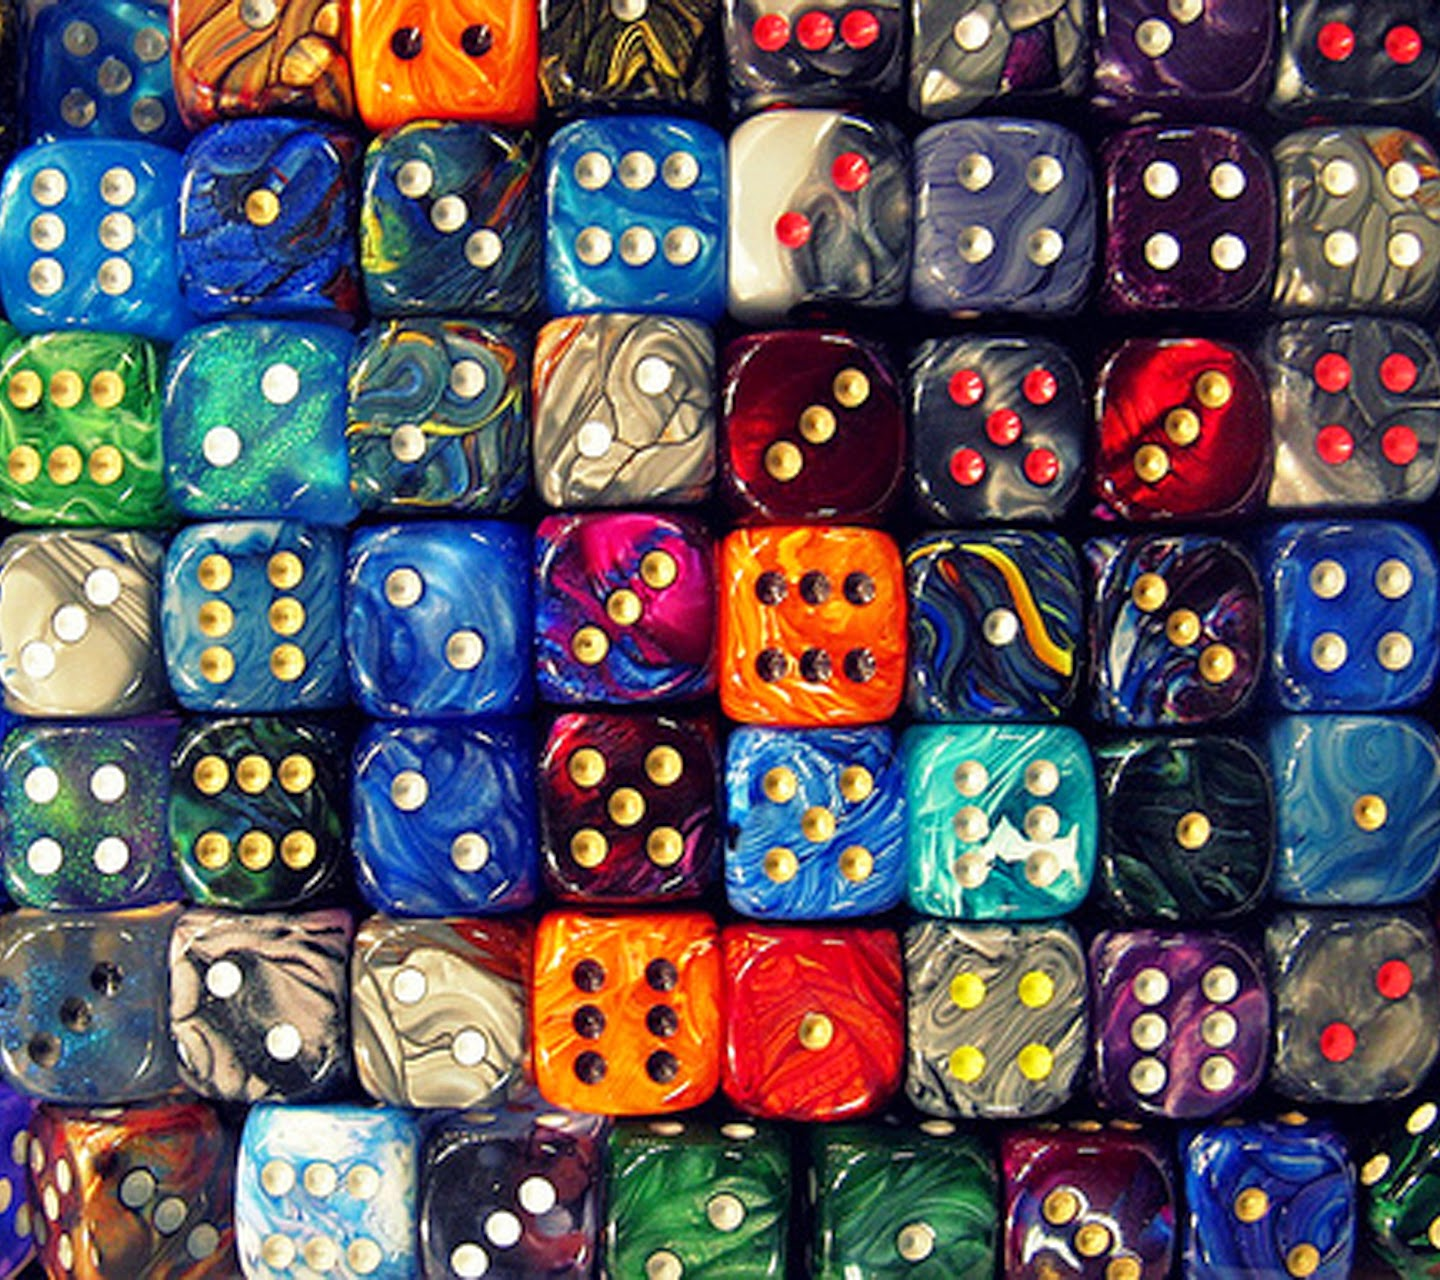 dice wallpaper 1440 1280 wallpaper